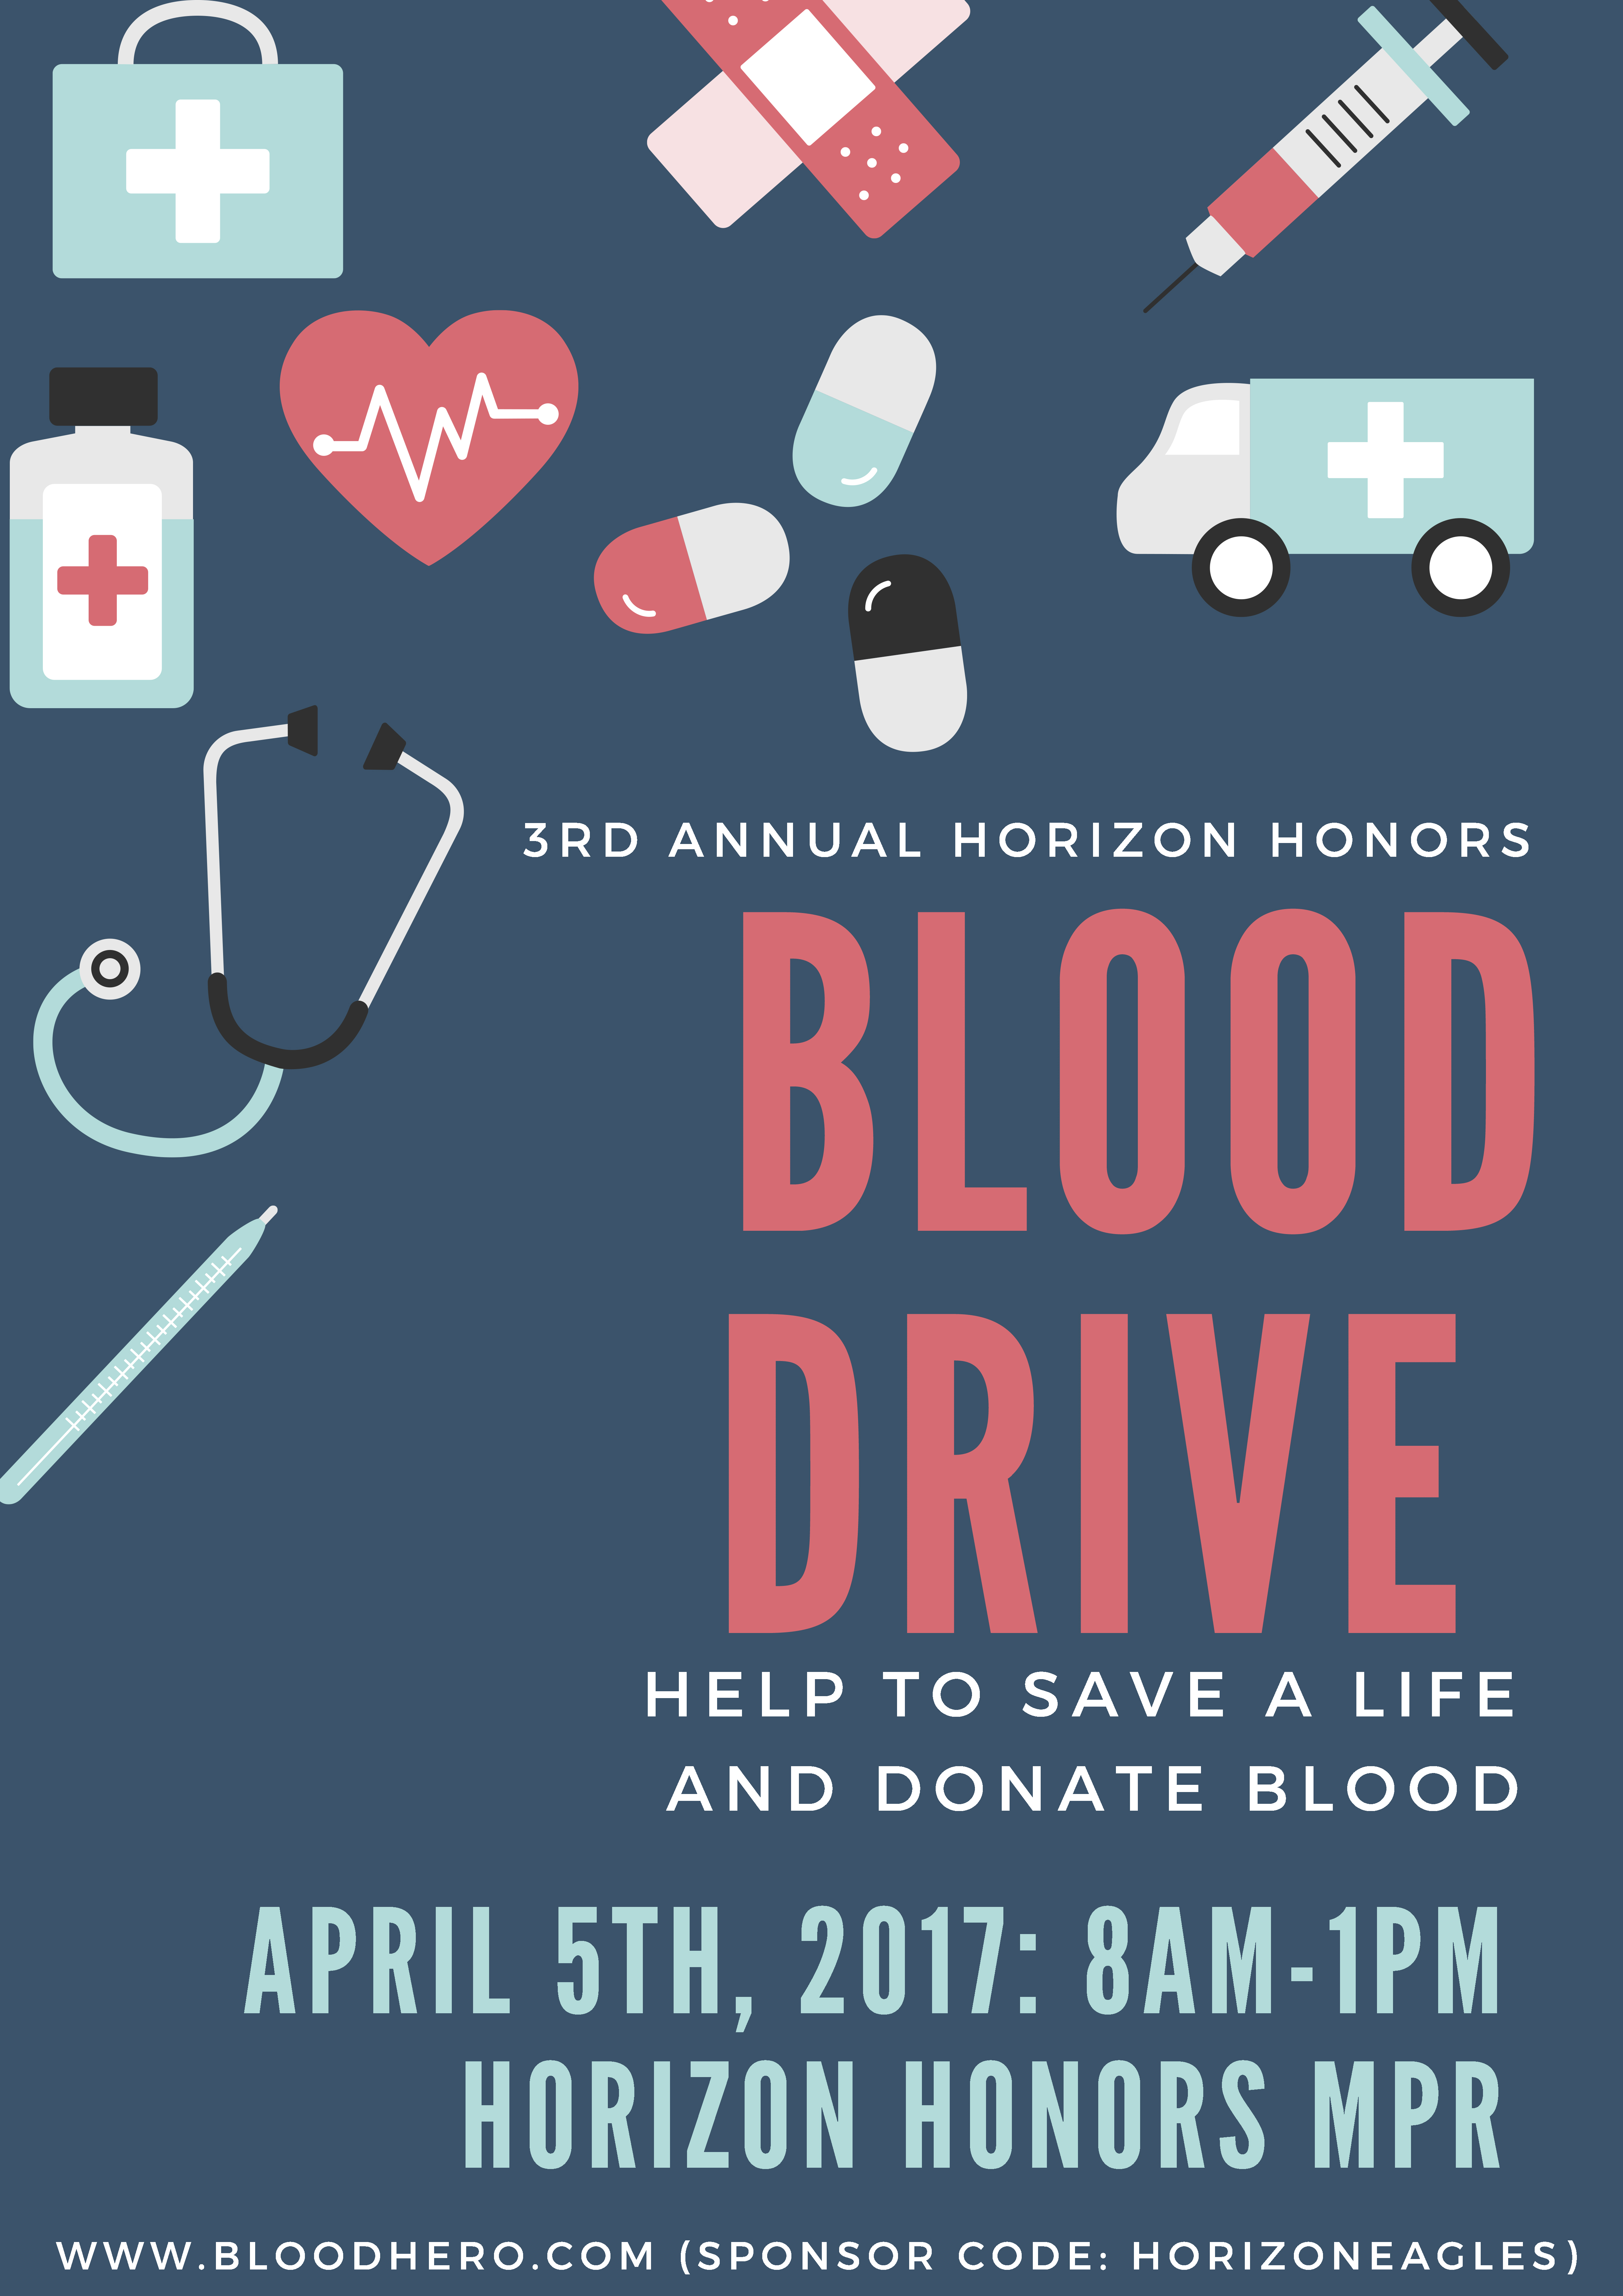 MS-HS-Blood-Drive-Flyer-4-5-17.jpg